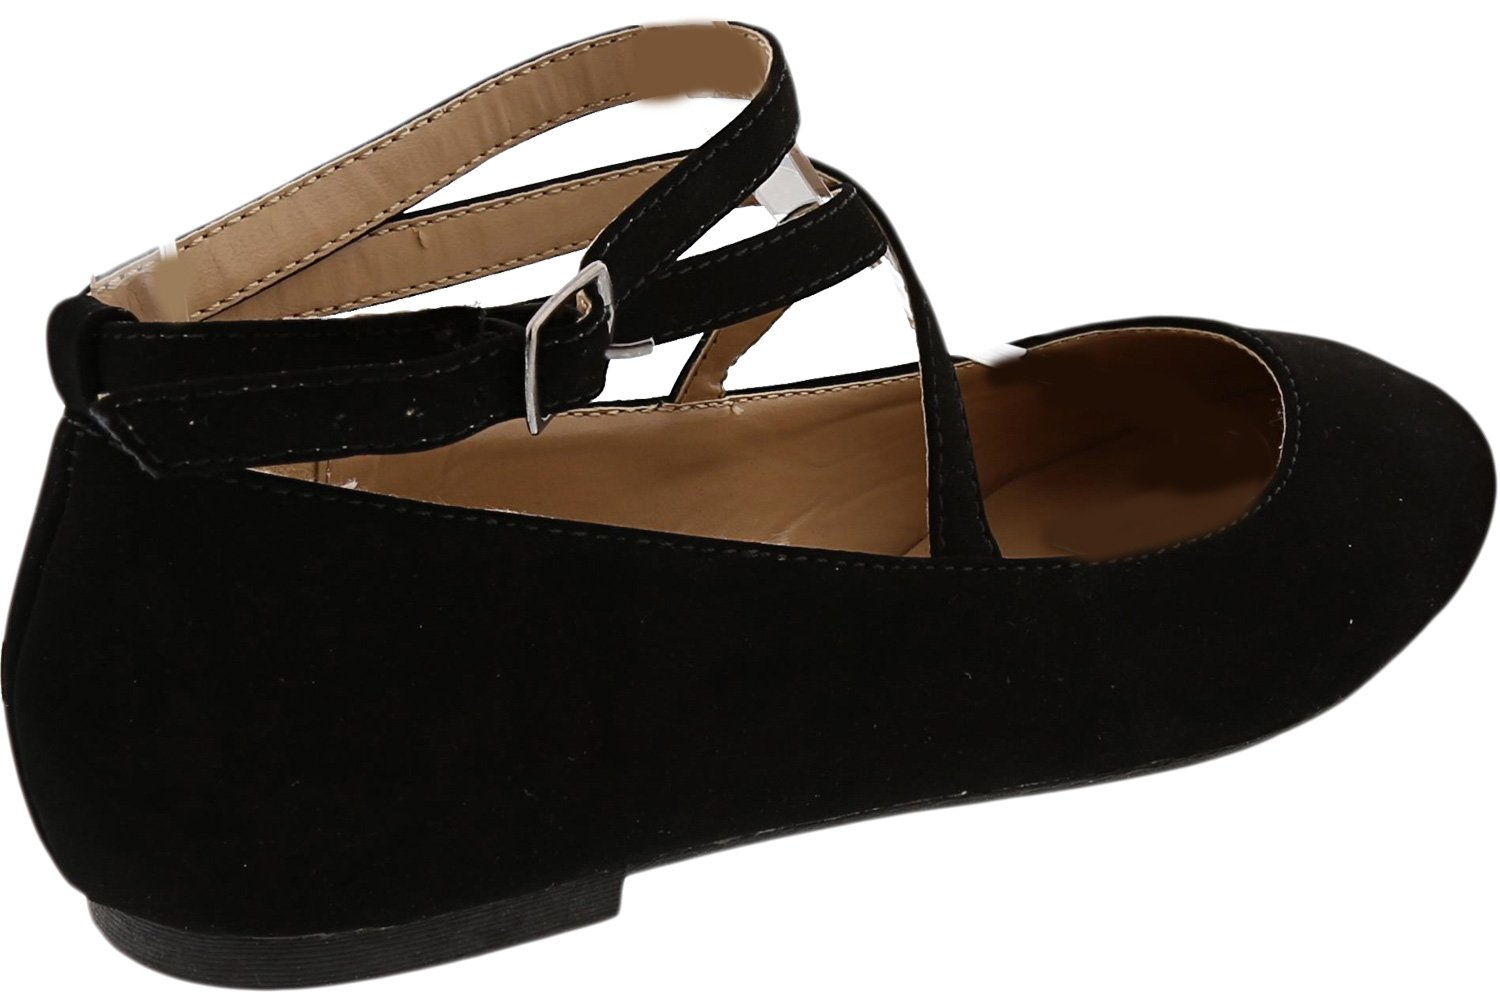 Top Moda Women's Brea-3 Strappy Ballet Flat (8 B(M) US, Black) by Top Moda (Image #4)